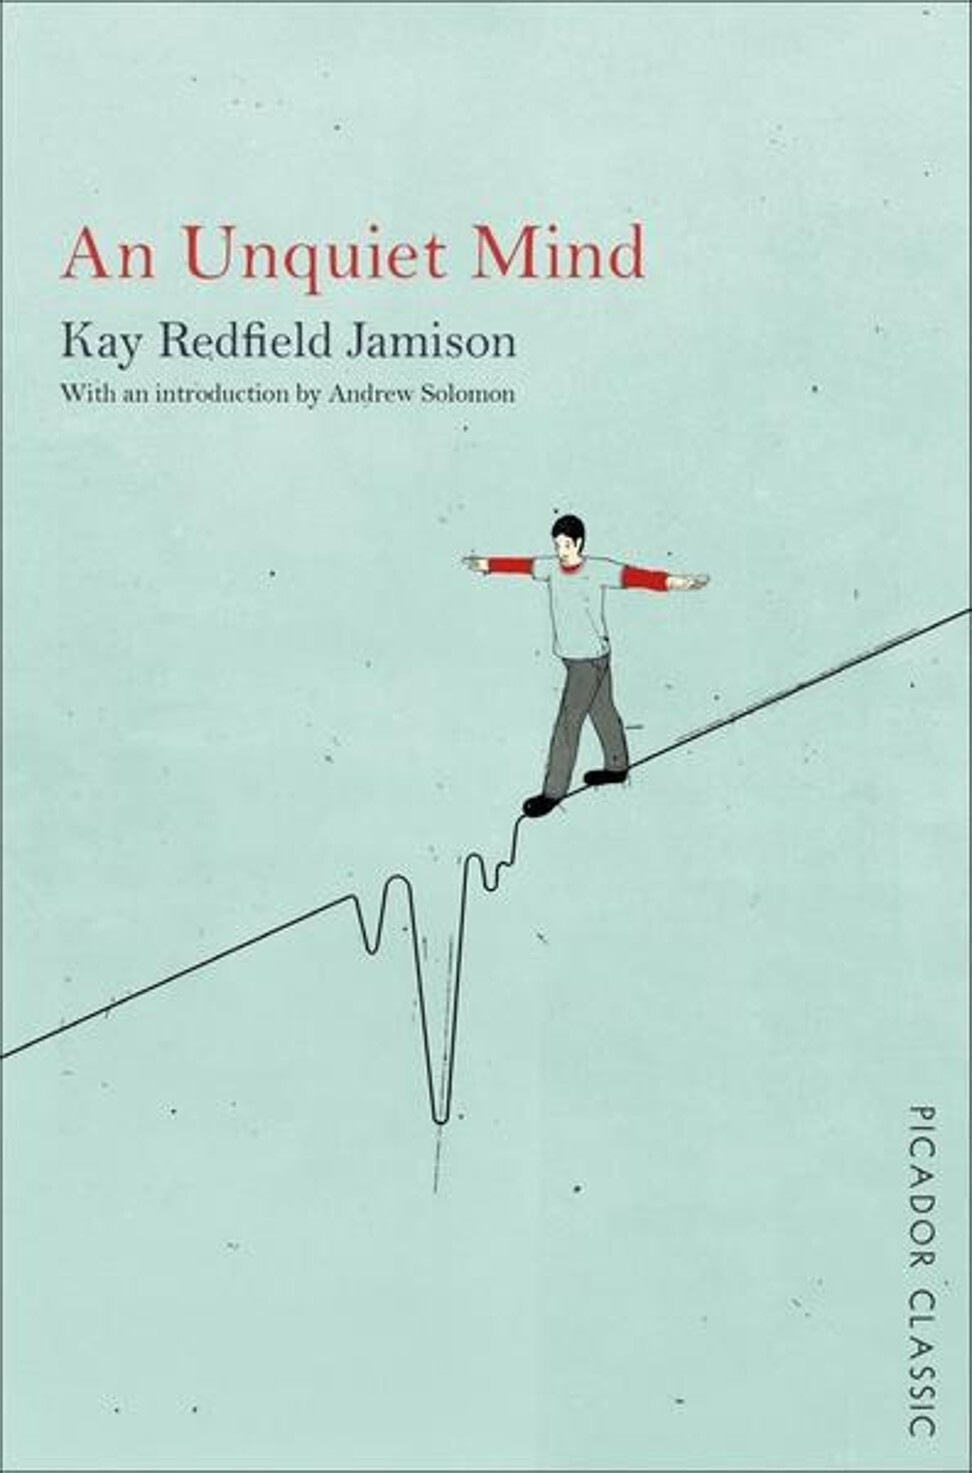 The cover of Redfield Jamison's book. Photo: Picador